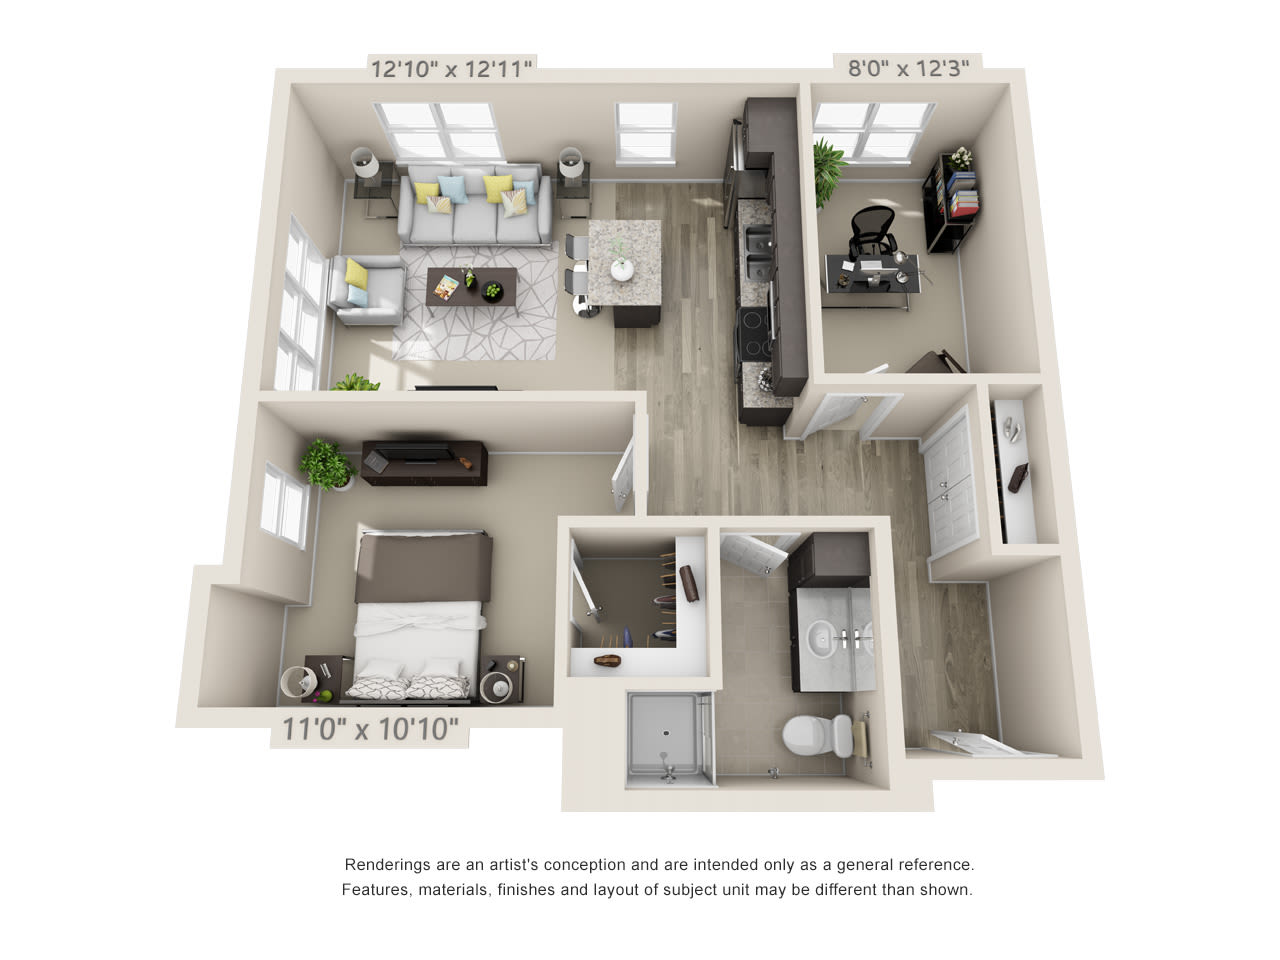 Assisted living one bedroom floor plan with a den at Talamore Senior Living in St. Cloud, Minnesota